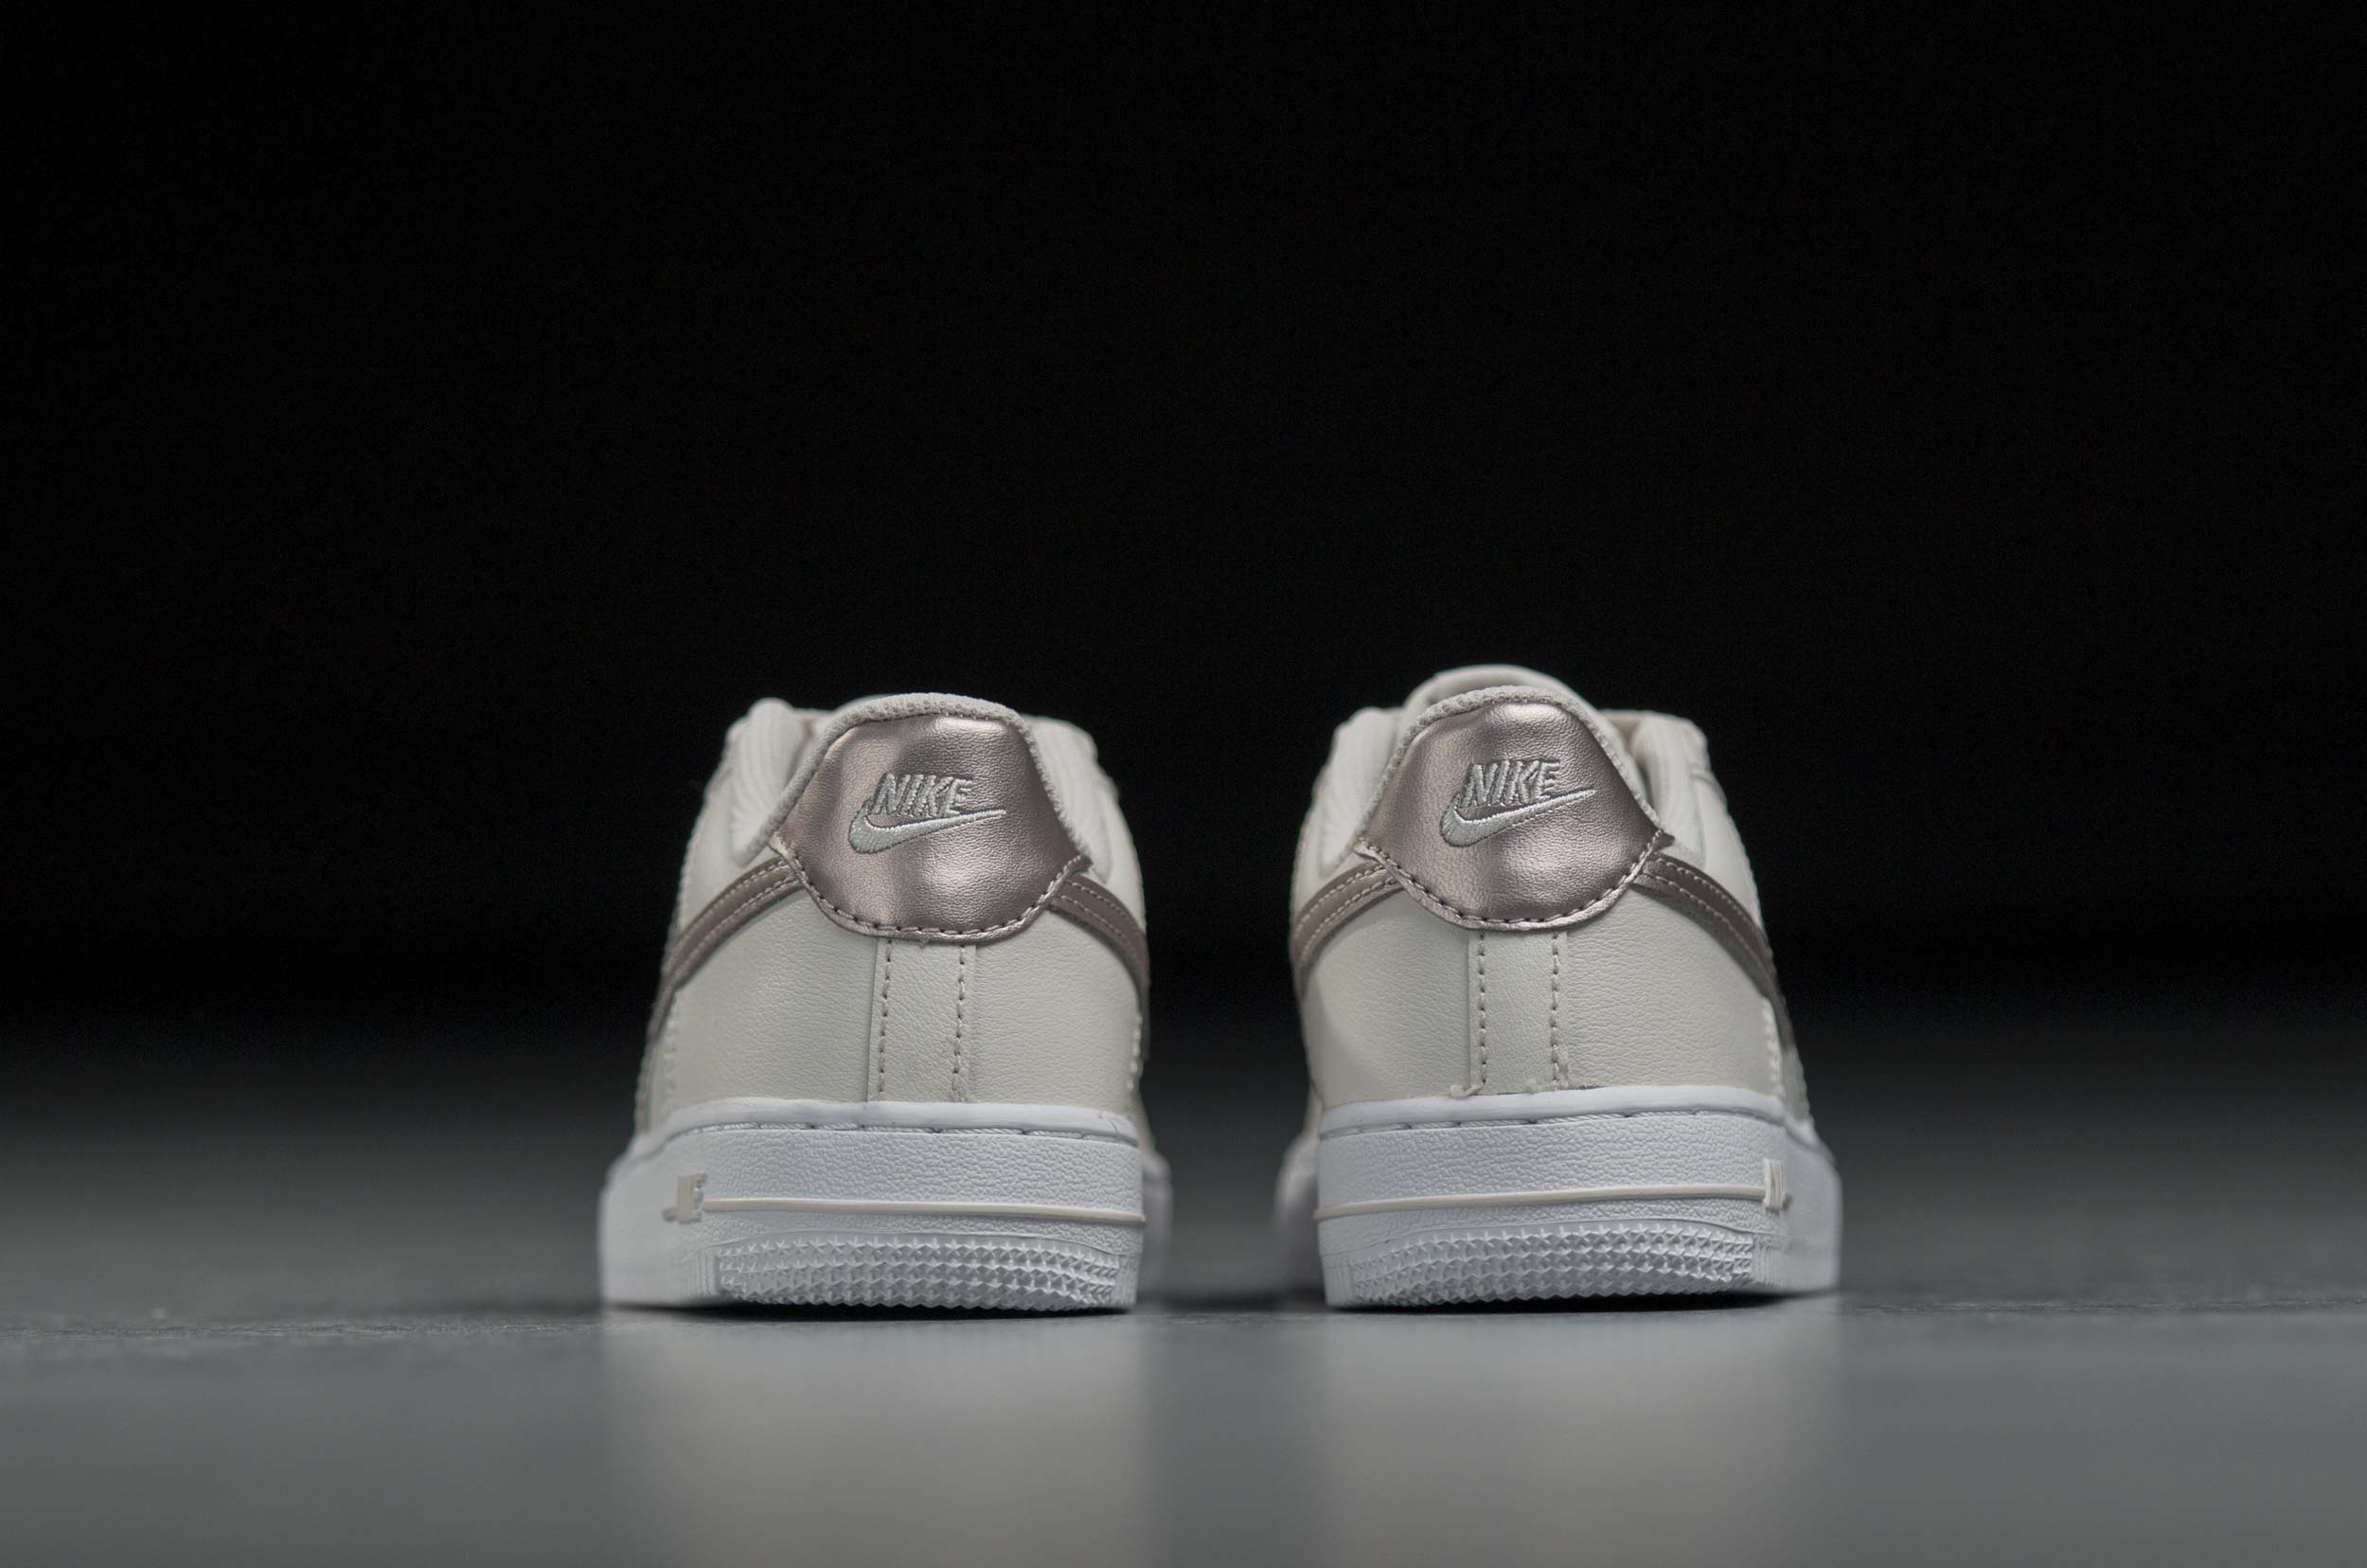 NIKE AIR FORCE 1 PS 314220-021 Εκρού